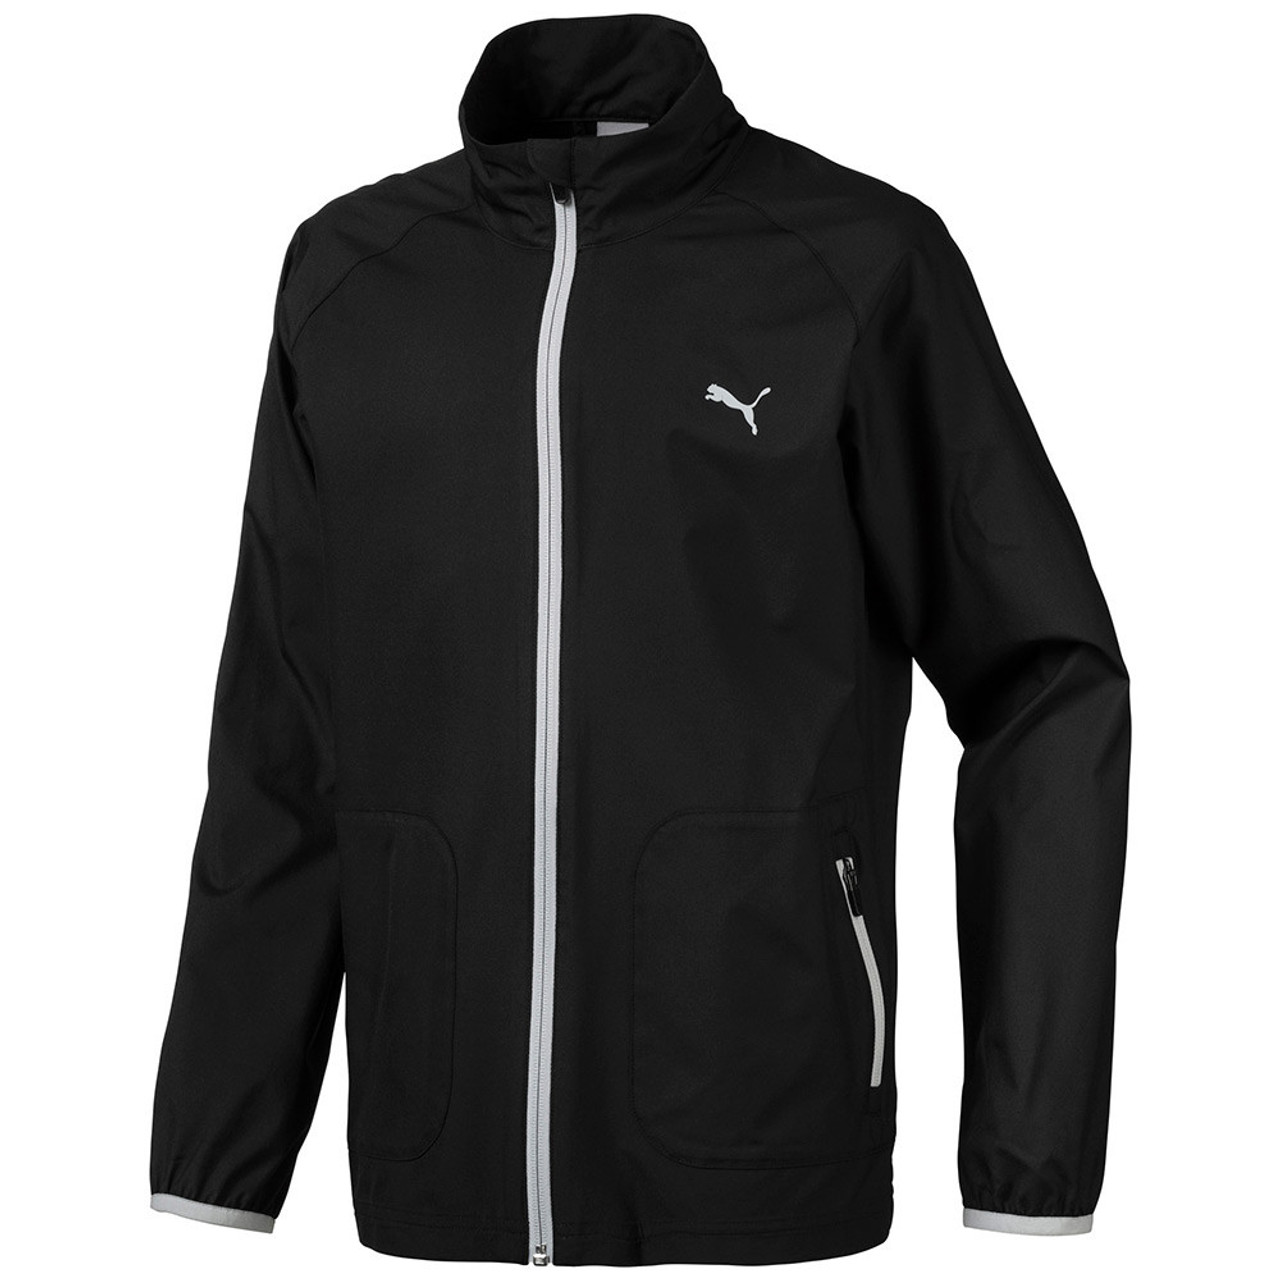 Puma Boys Wind Golf Jacket - Puma Black